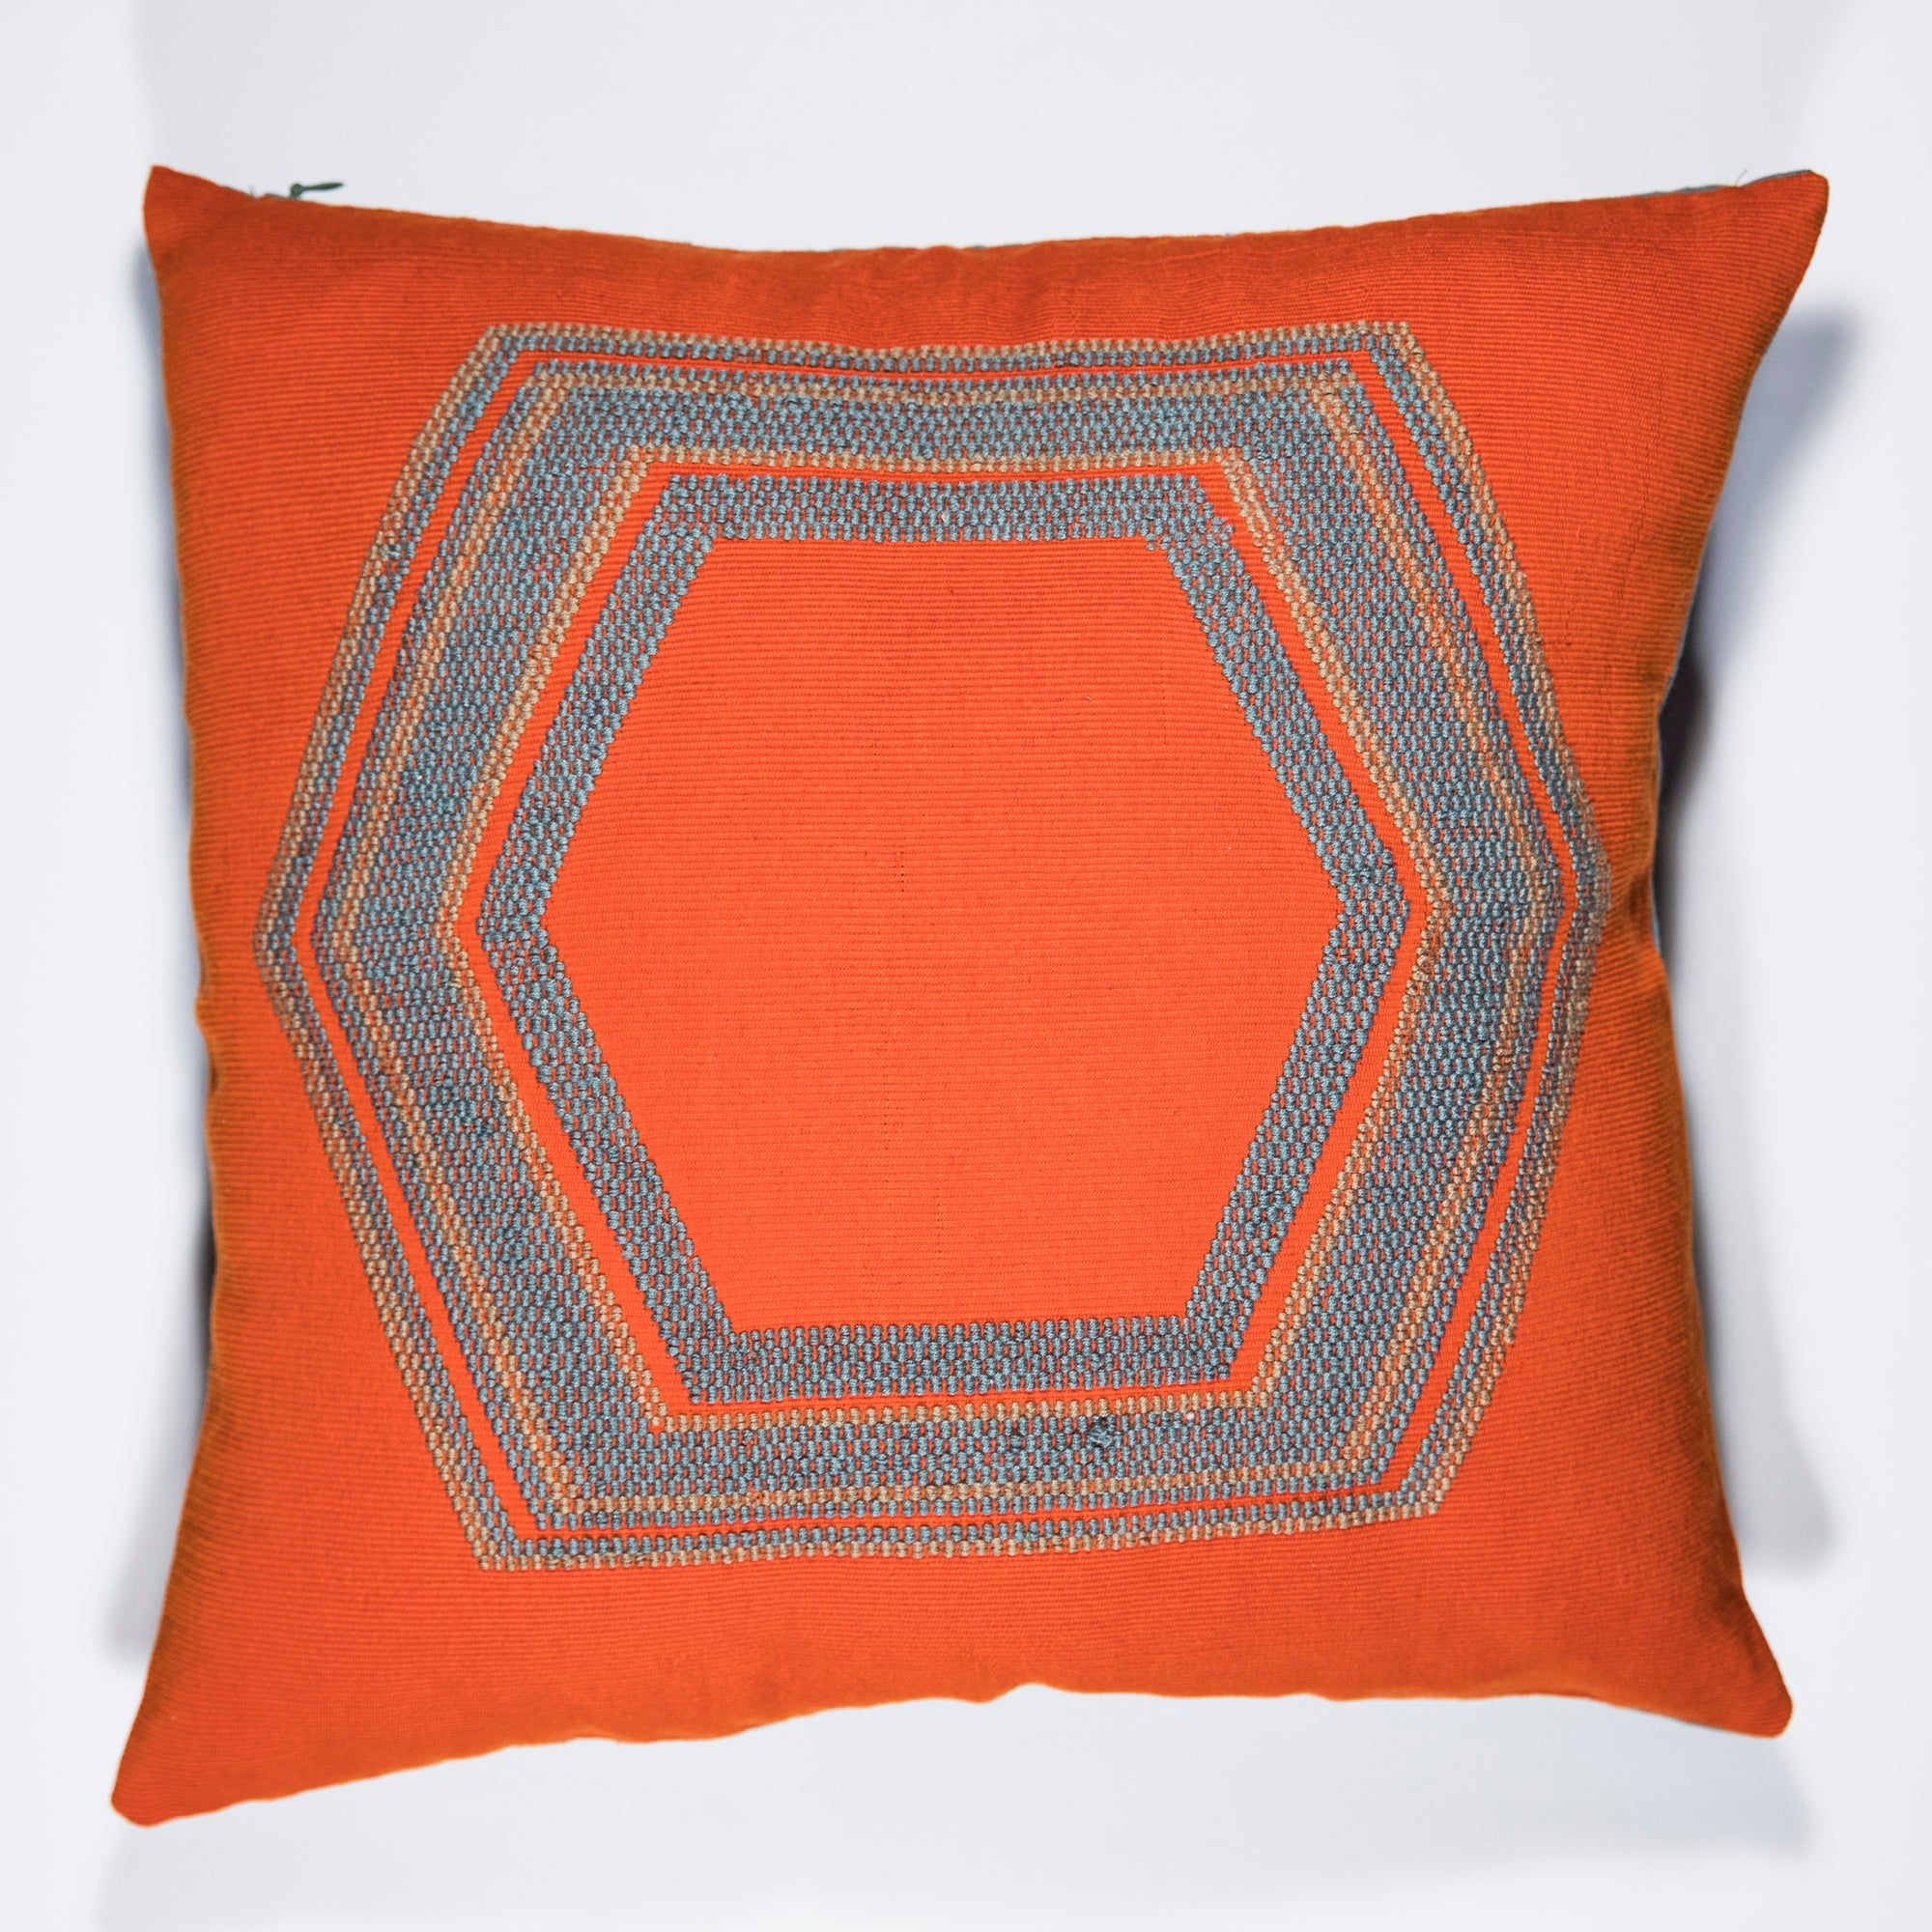 GEO Pillow Case handwoven in Guatemala by Living Threads Co. Artisans in Orange - front